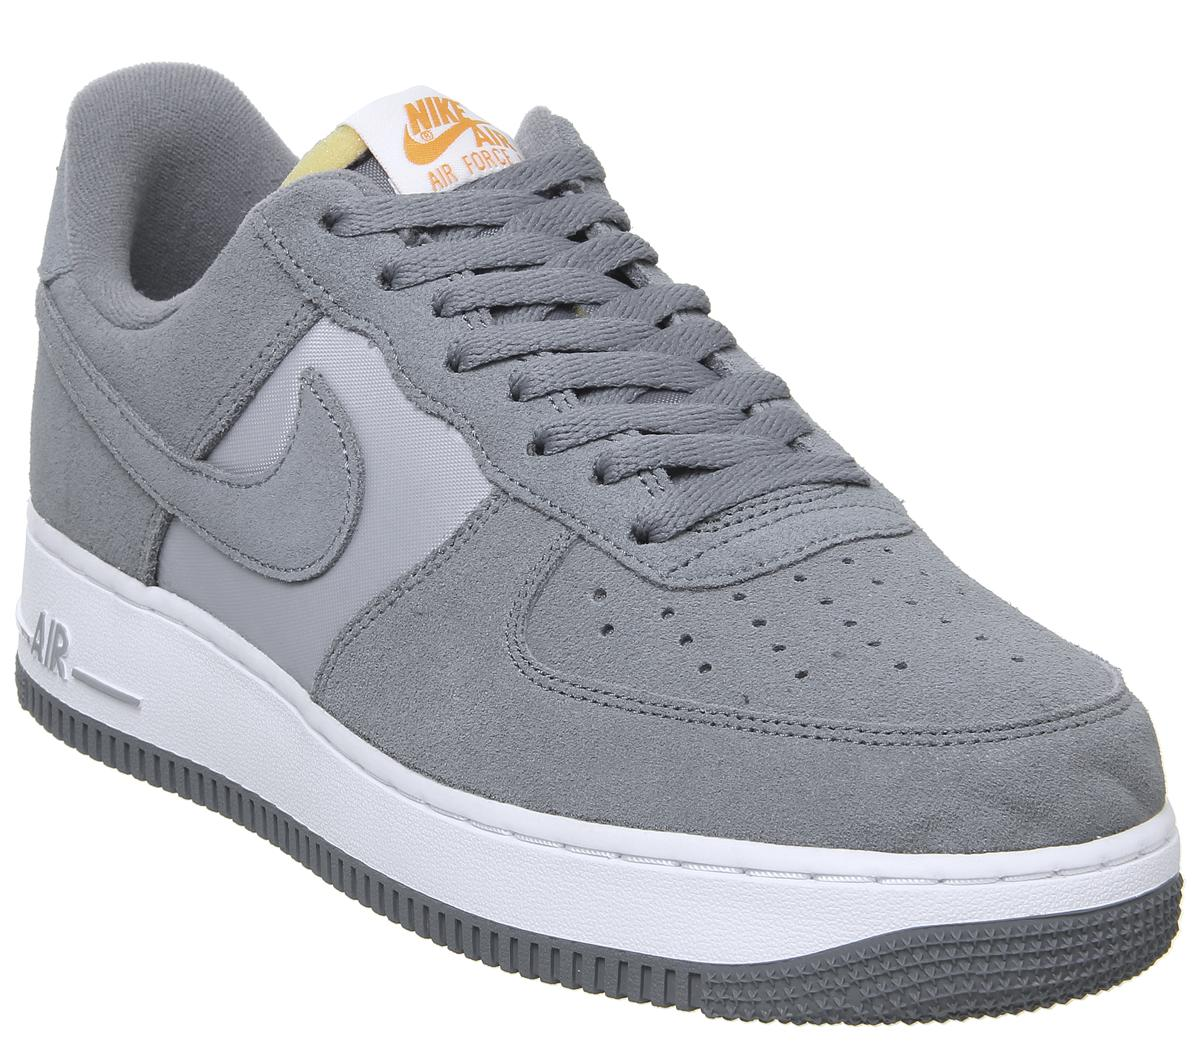 nike air force one wildleder